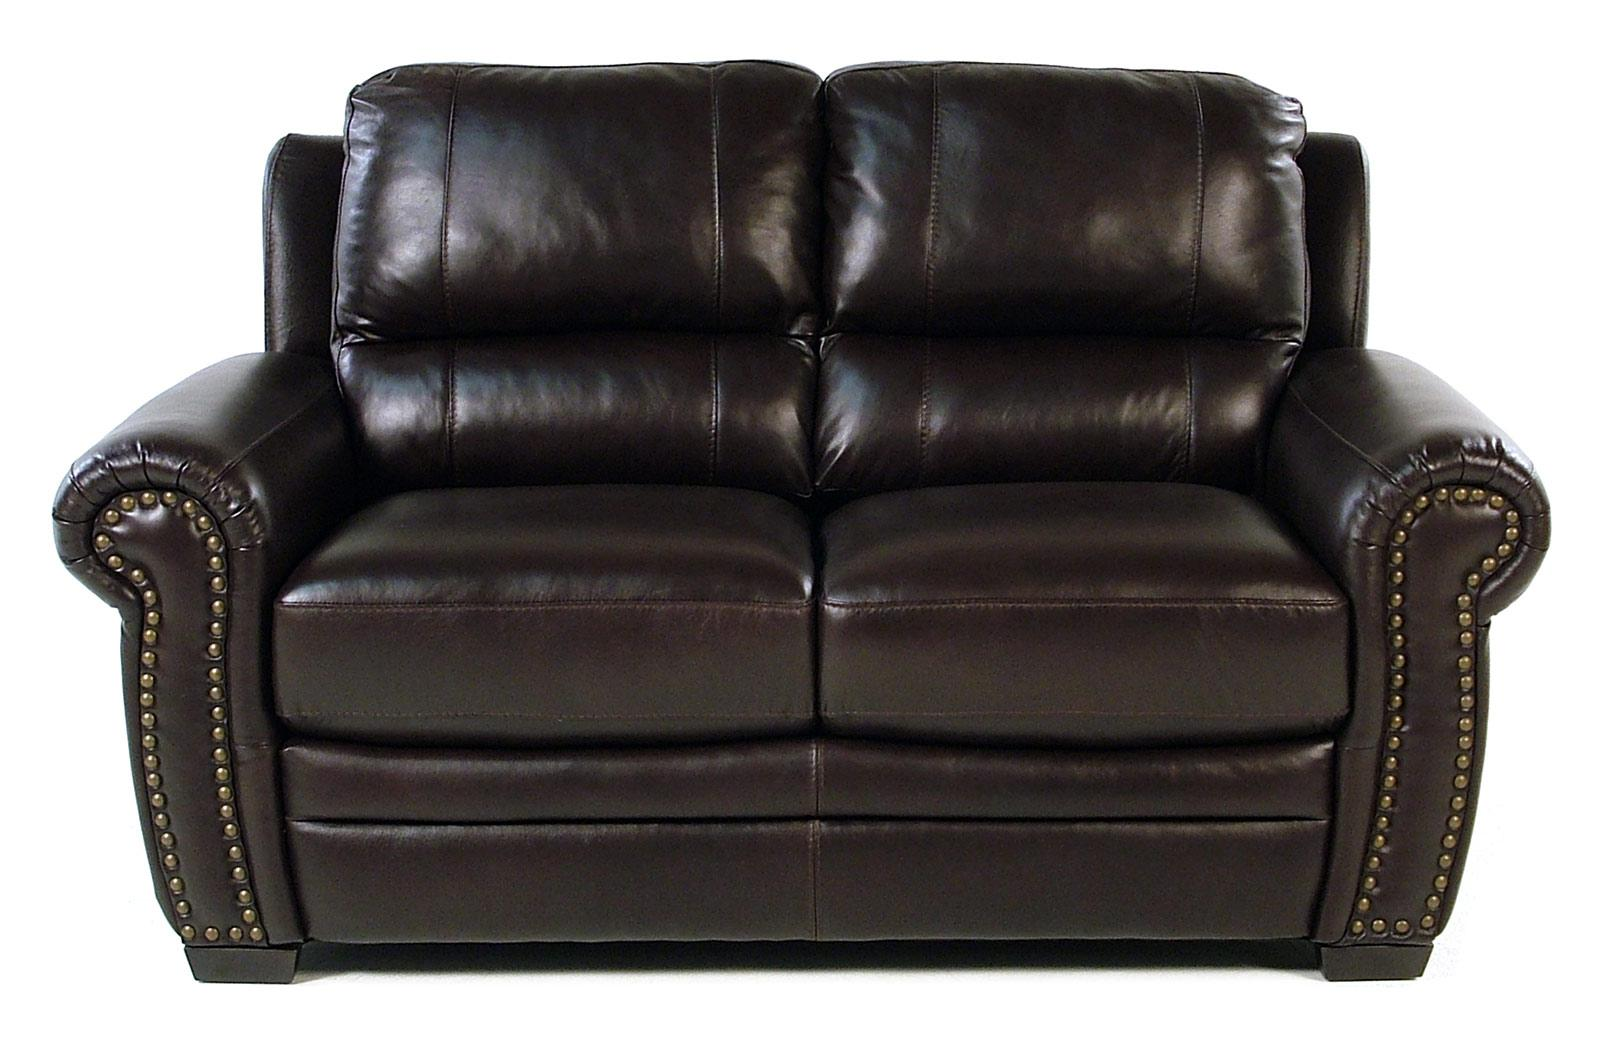 Giovani Devonshire Leather Loveseat - Item Number: 10013NH-Y2S